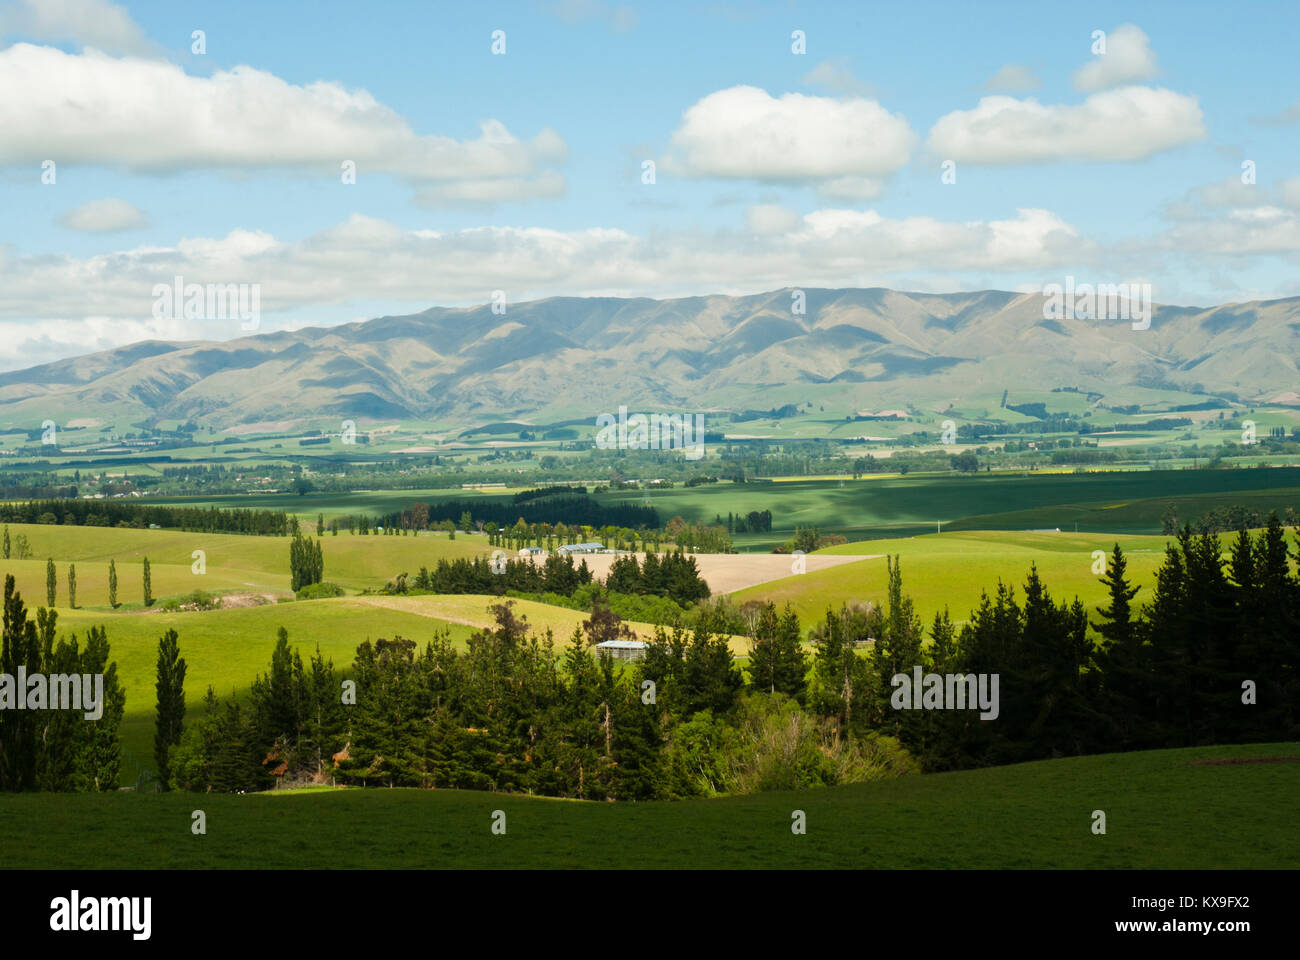 Stunning landscape from State Highway 79 (Fairlie-Geraldine road) looking west to mountain range with lush fields, - Stock Image